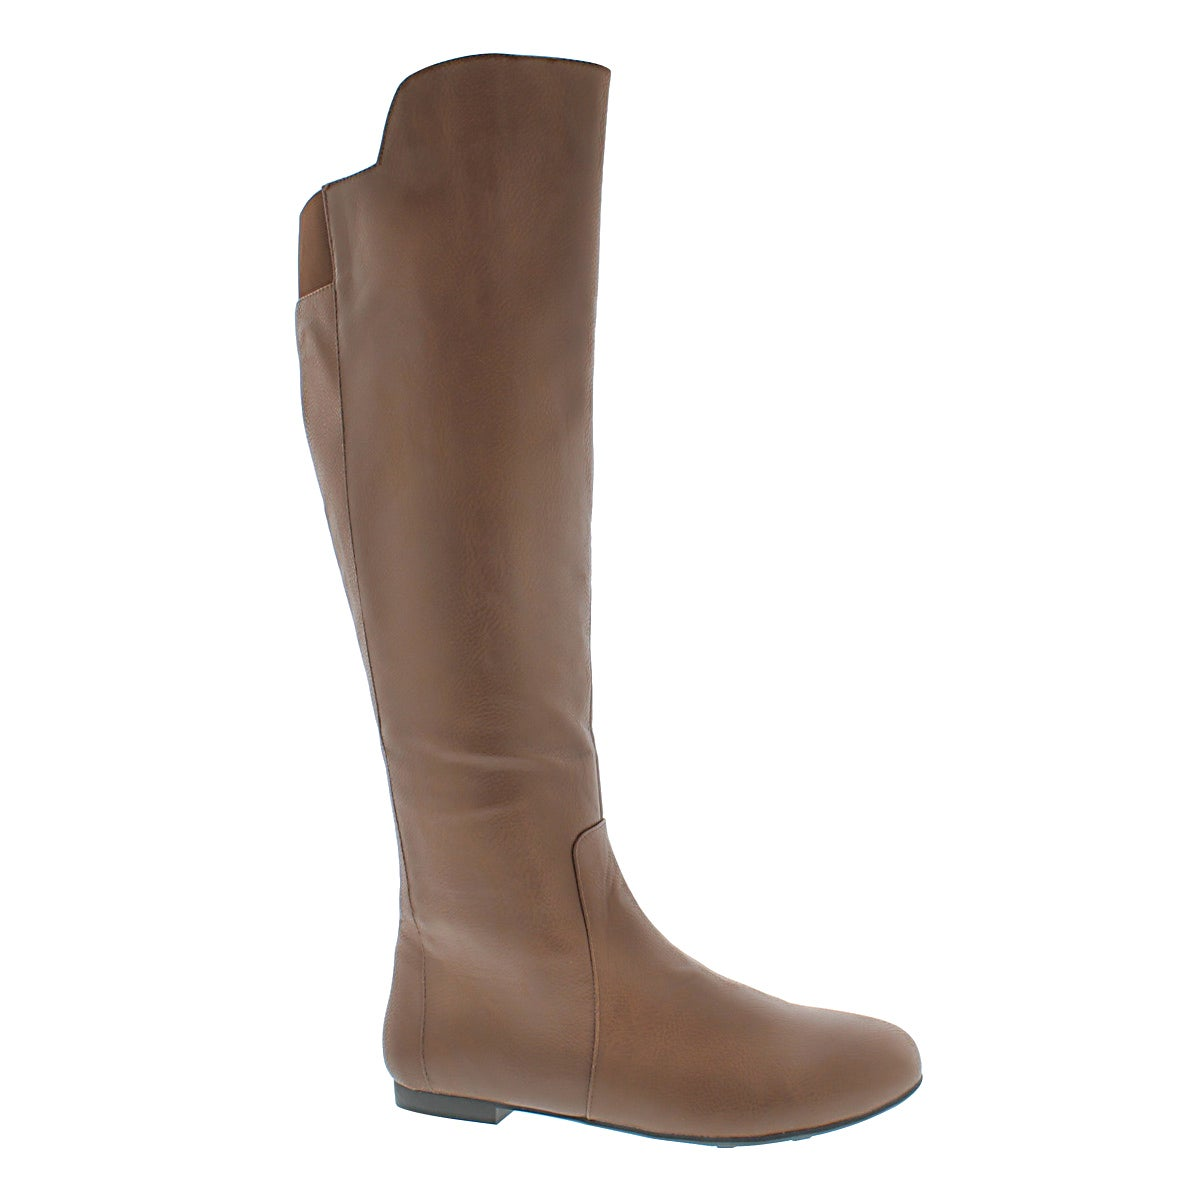 Women's TIARA brown tall casual boots